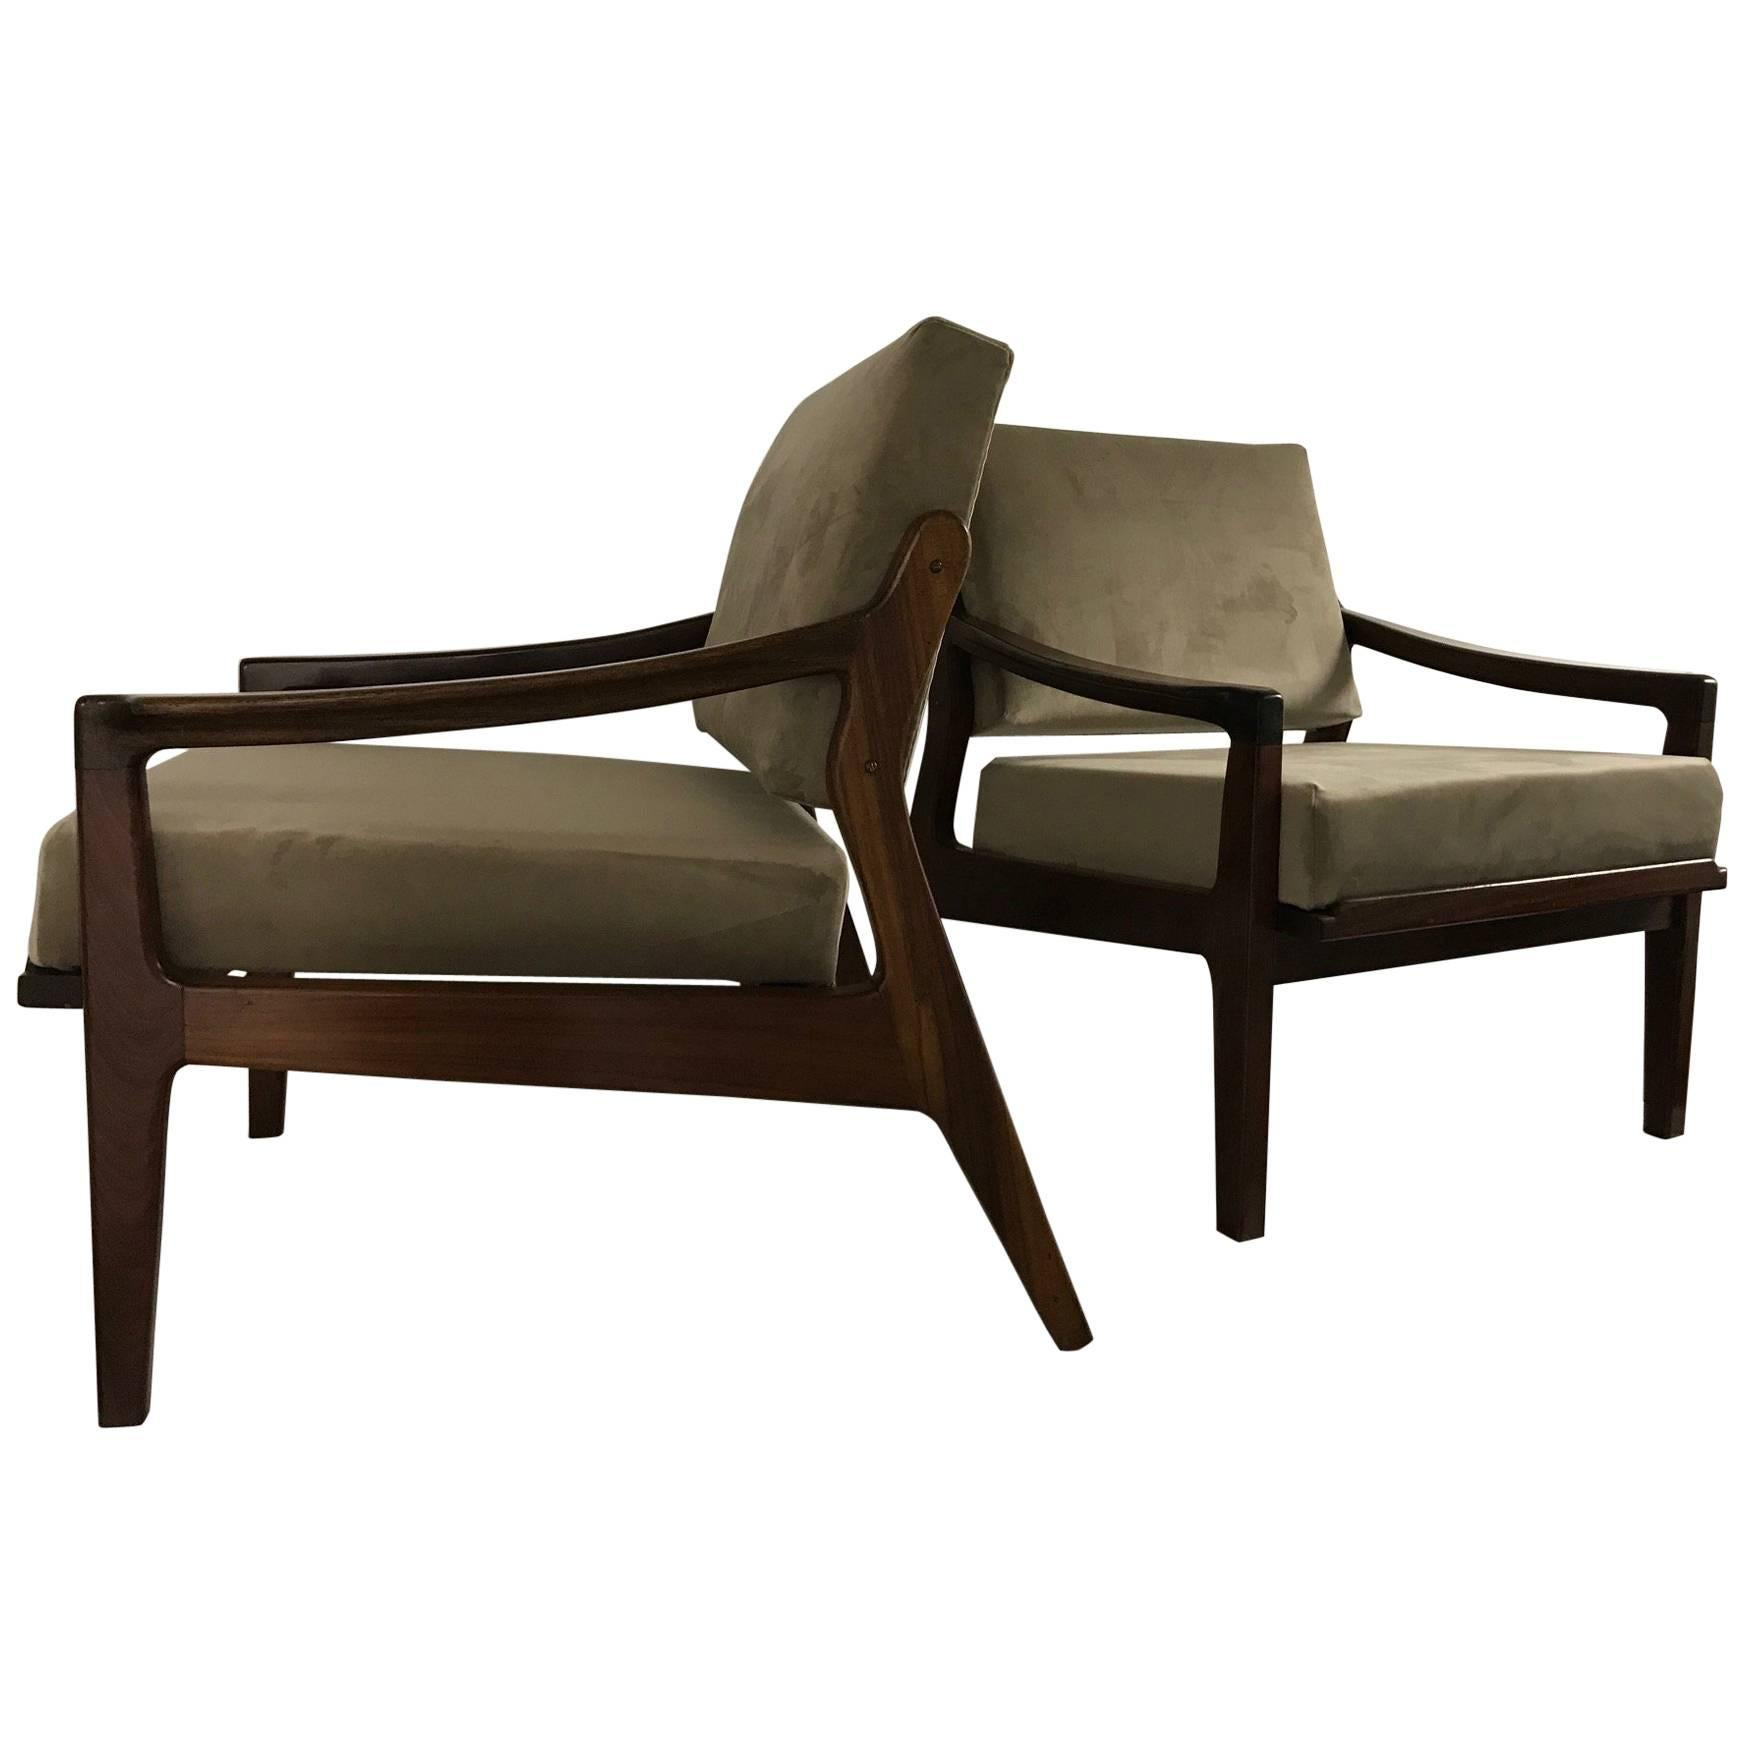 Altamira Armchairs, Portugal, 1960s